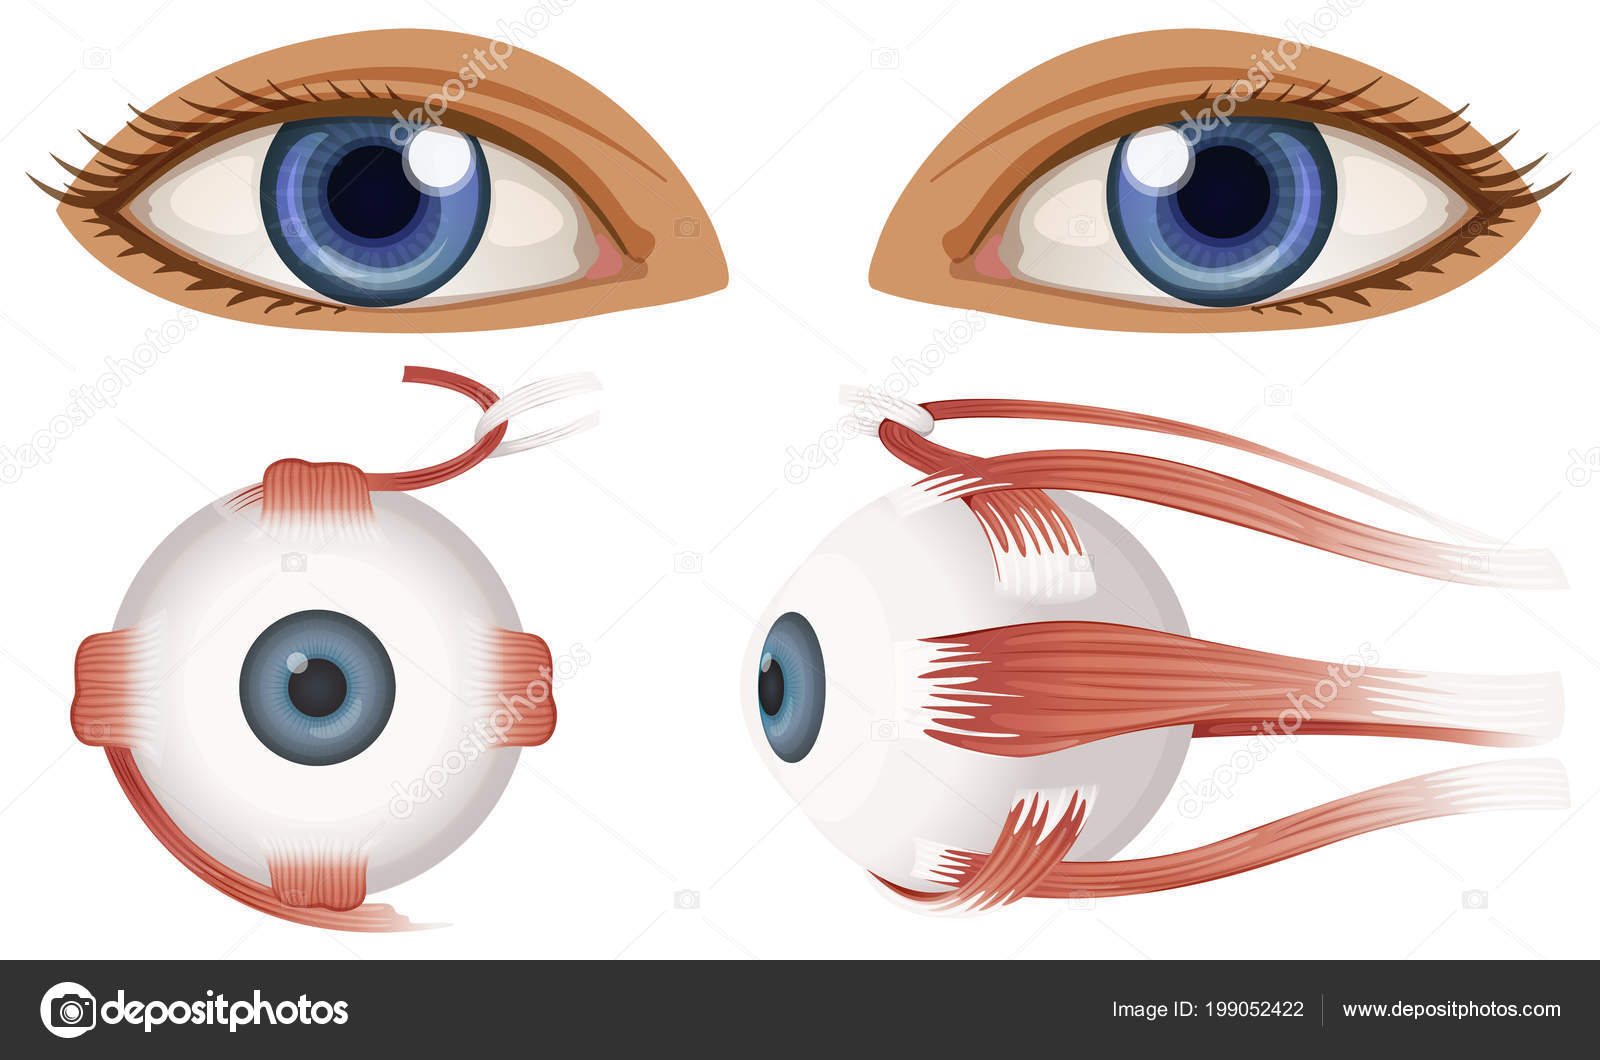 Human Anatomy Eyeball Illustration — Stock Vector © blueringmedia ...